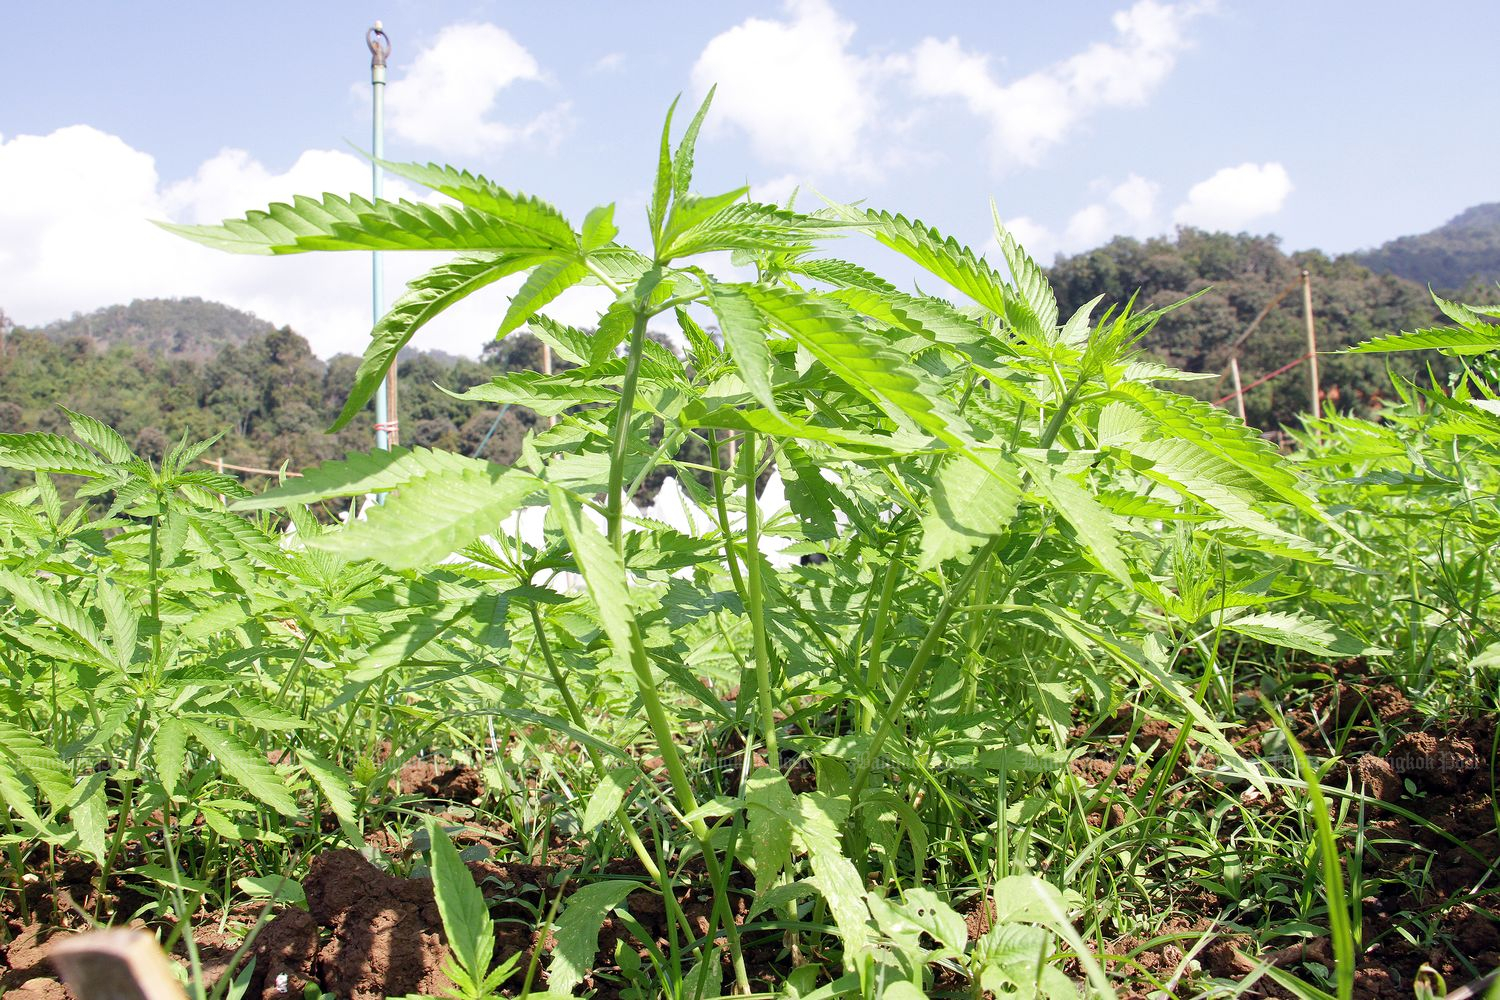 Hemp is grown in a demonstration field at Pangda agricultural station in Samoeng district, Chiang Mai province, on Jan 21. (Photo by Tawatchai Kemgumnerd)